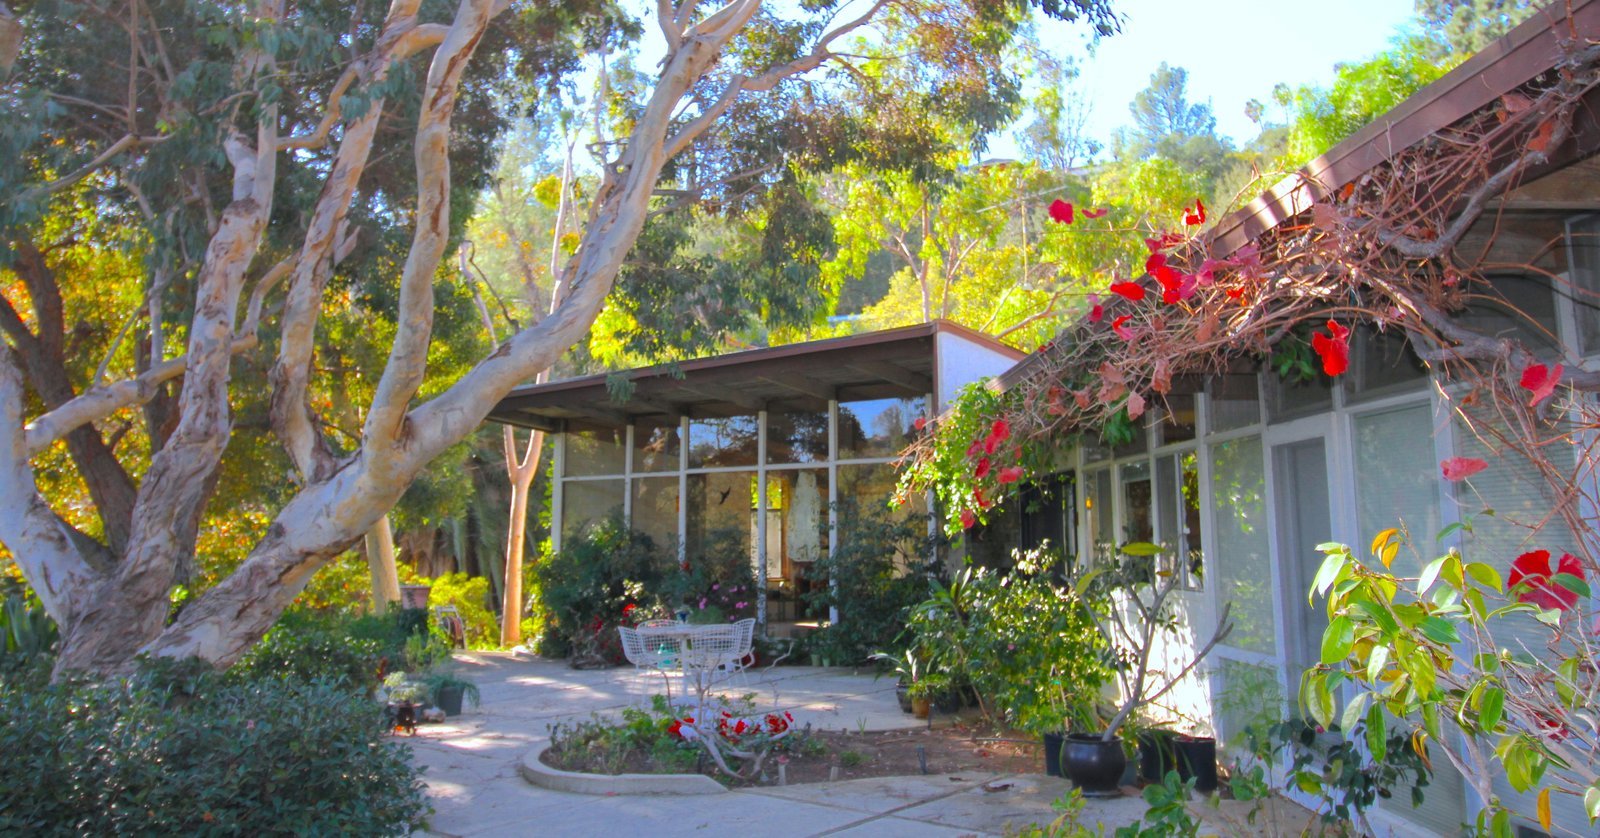 Outdoor, Flowers, Trees, Gardens, Garden, and Shrubs  Photo 10 of 10 in An Exceptional Midcentury by Case Study Architect Pierre Koenig Hits the Market